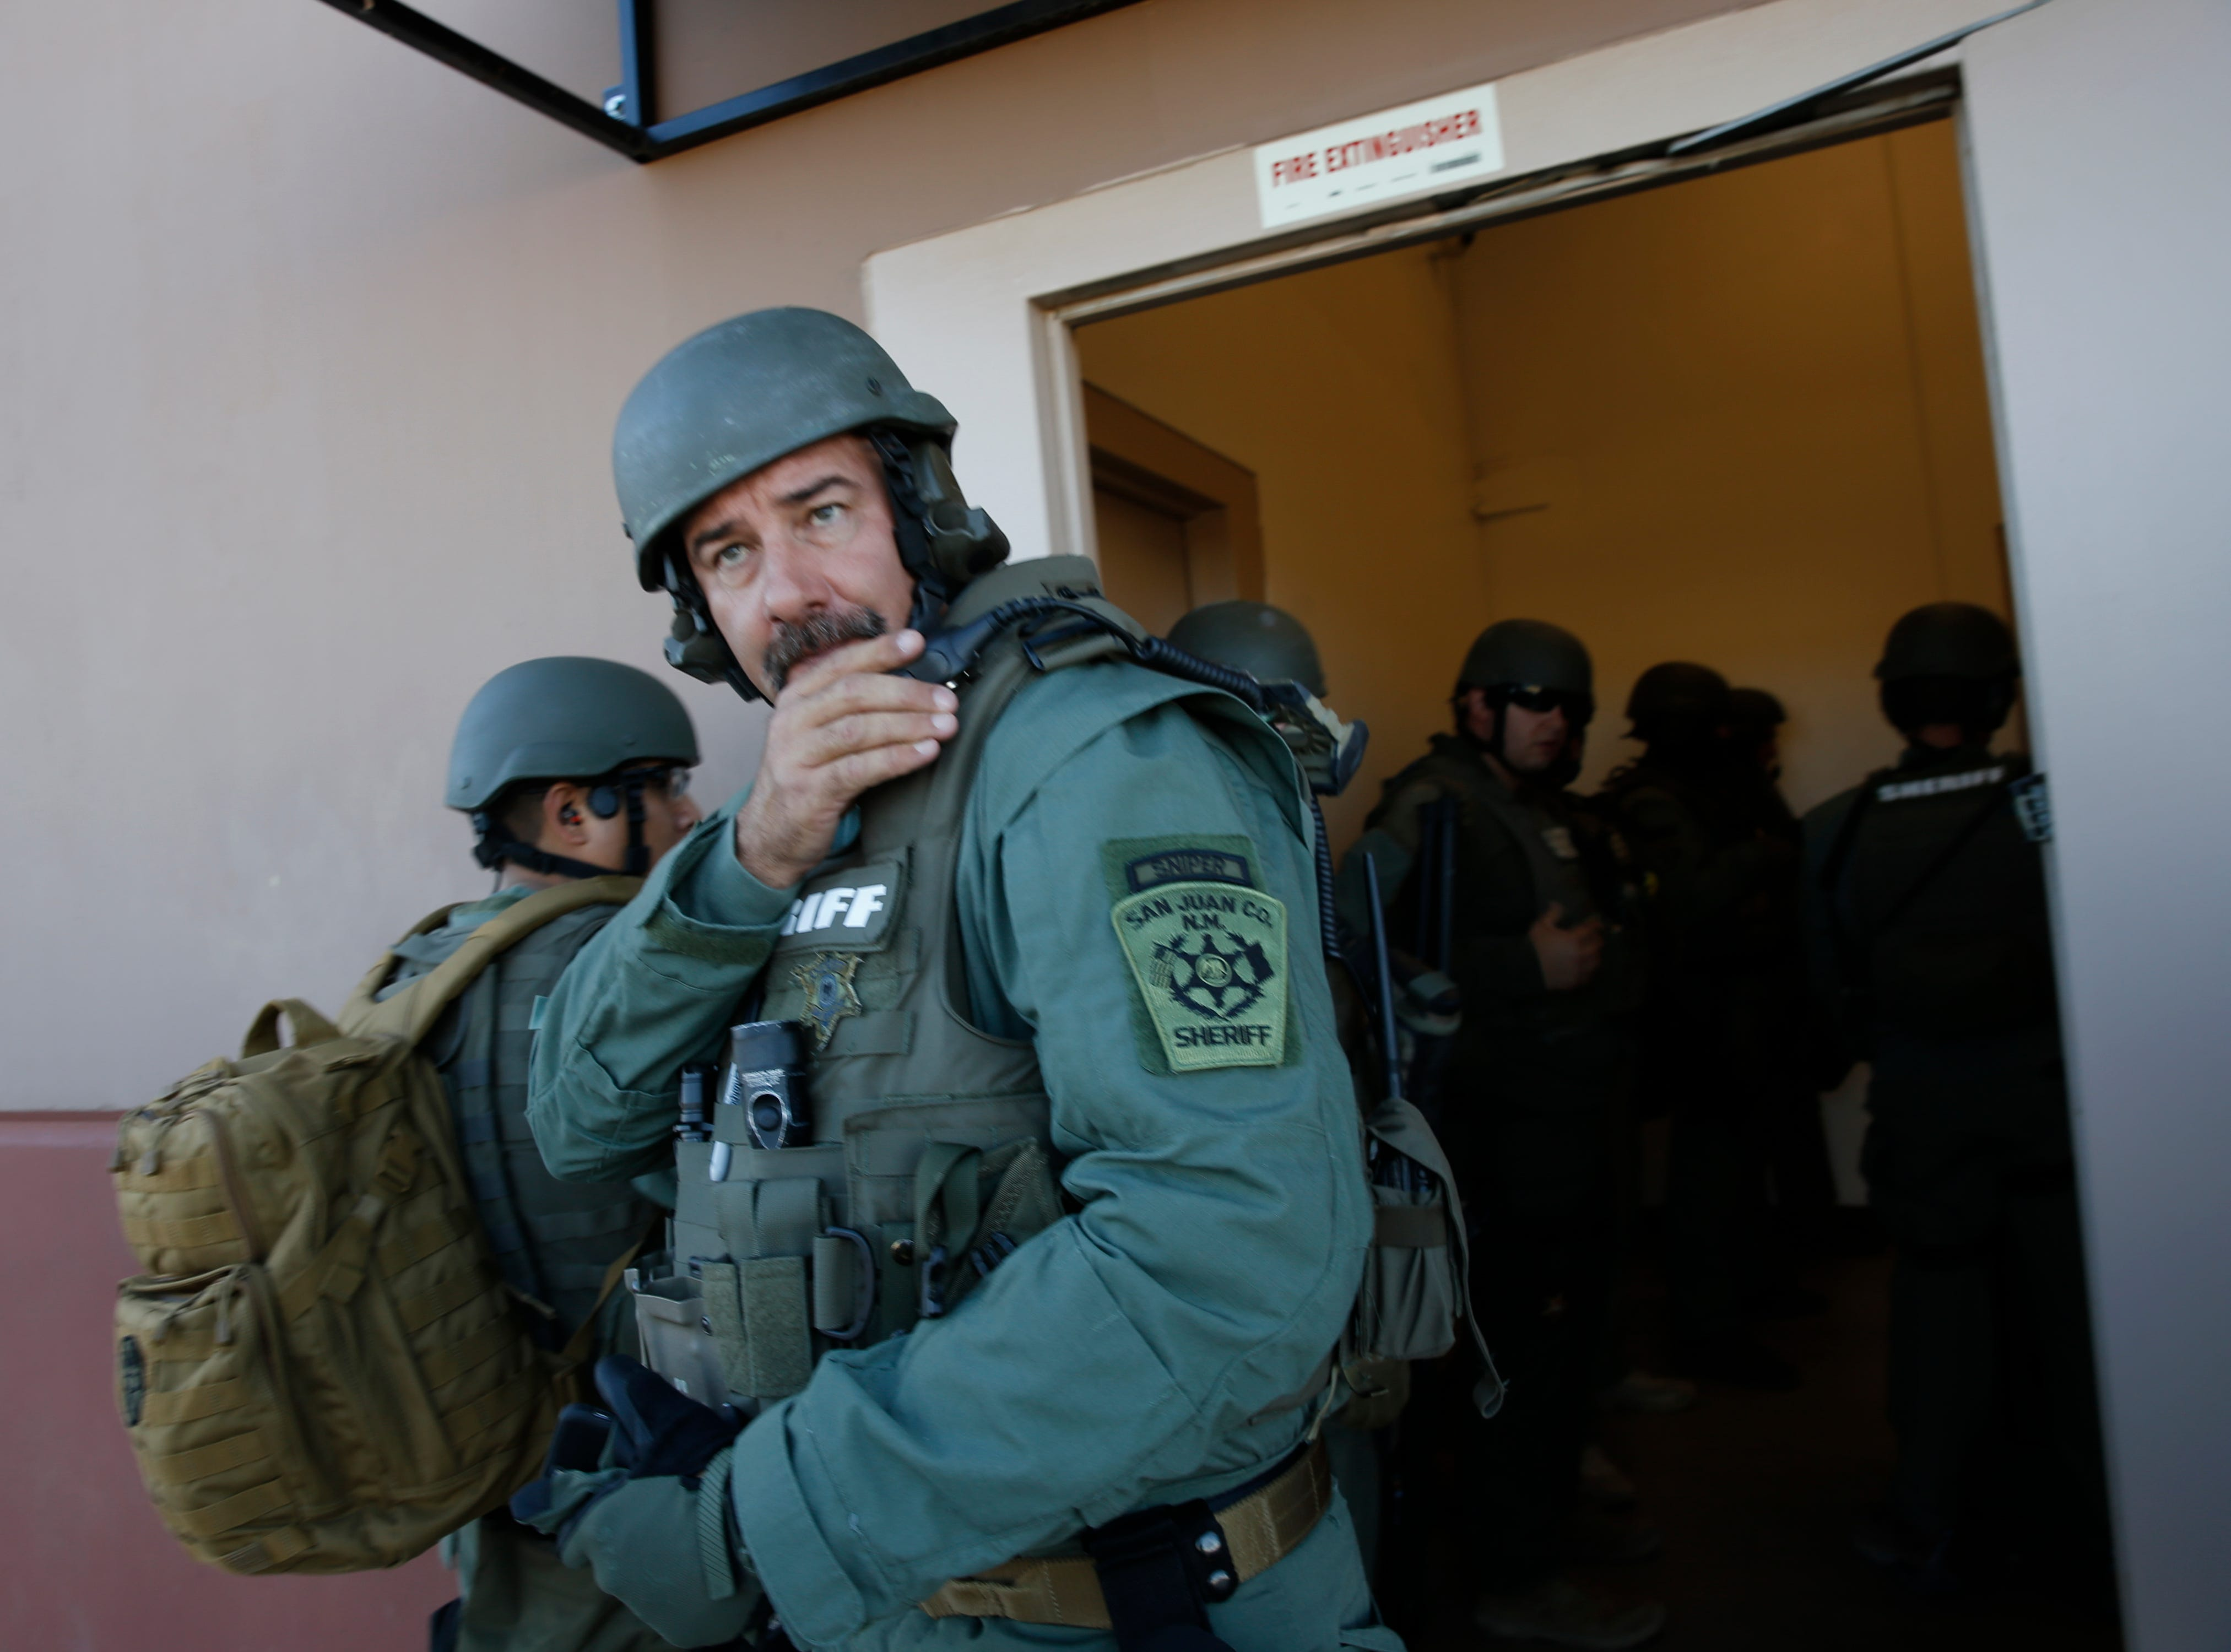 San Juan County Sheriff's Office SWAT team leader Sgt. Dave McCall collects information on a simulated prison riot before his team enters the San Juan County Detention Center, Wednesday, Sept. 12, 2018 in Farmington.